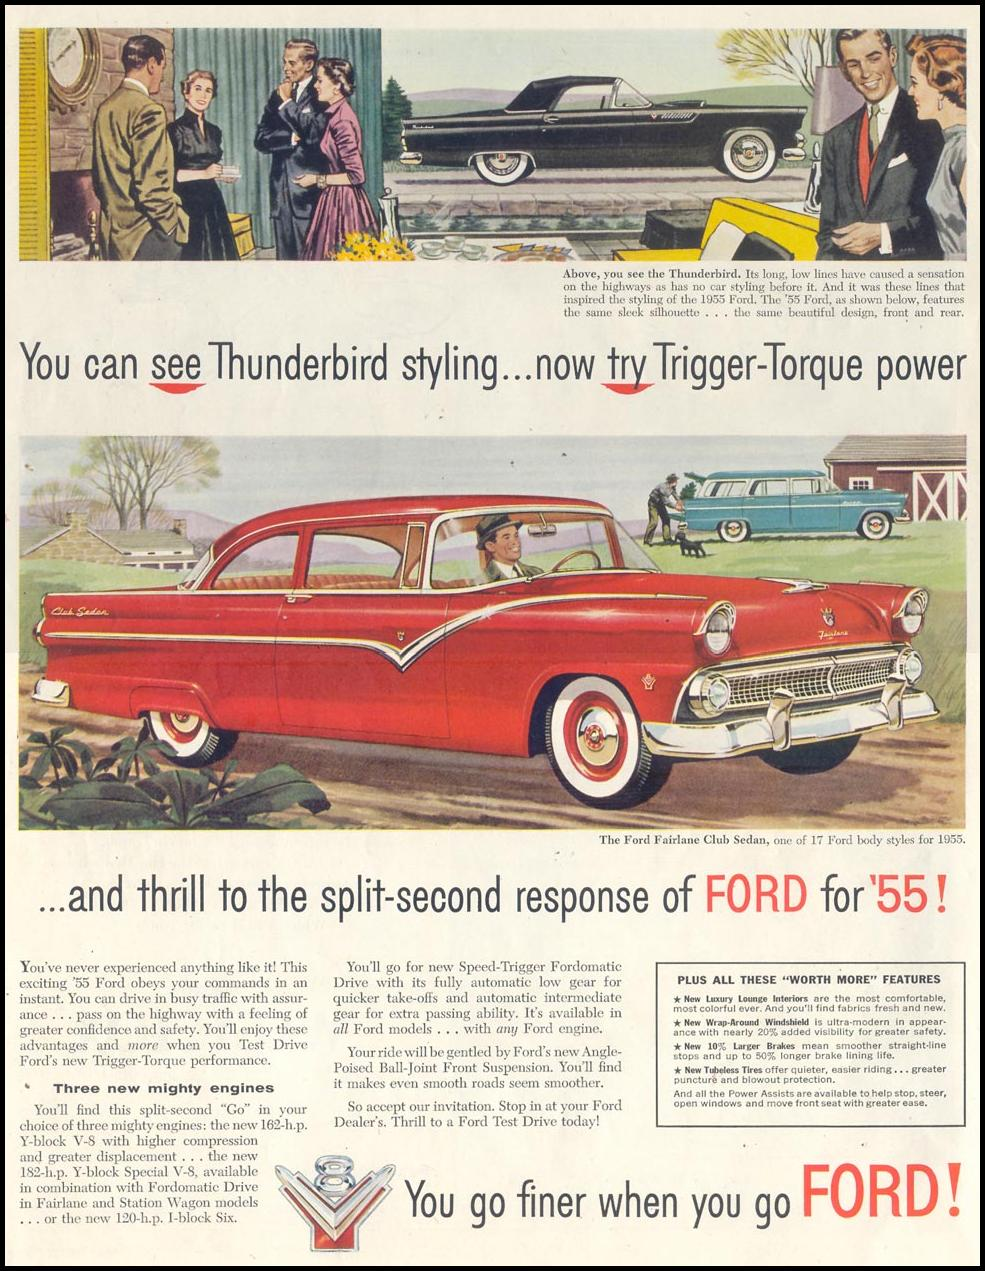 FORD AUTOMOBILES SATURDAY EVENING POST 01/08/1955 p. 2